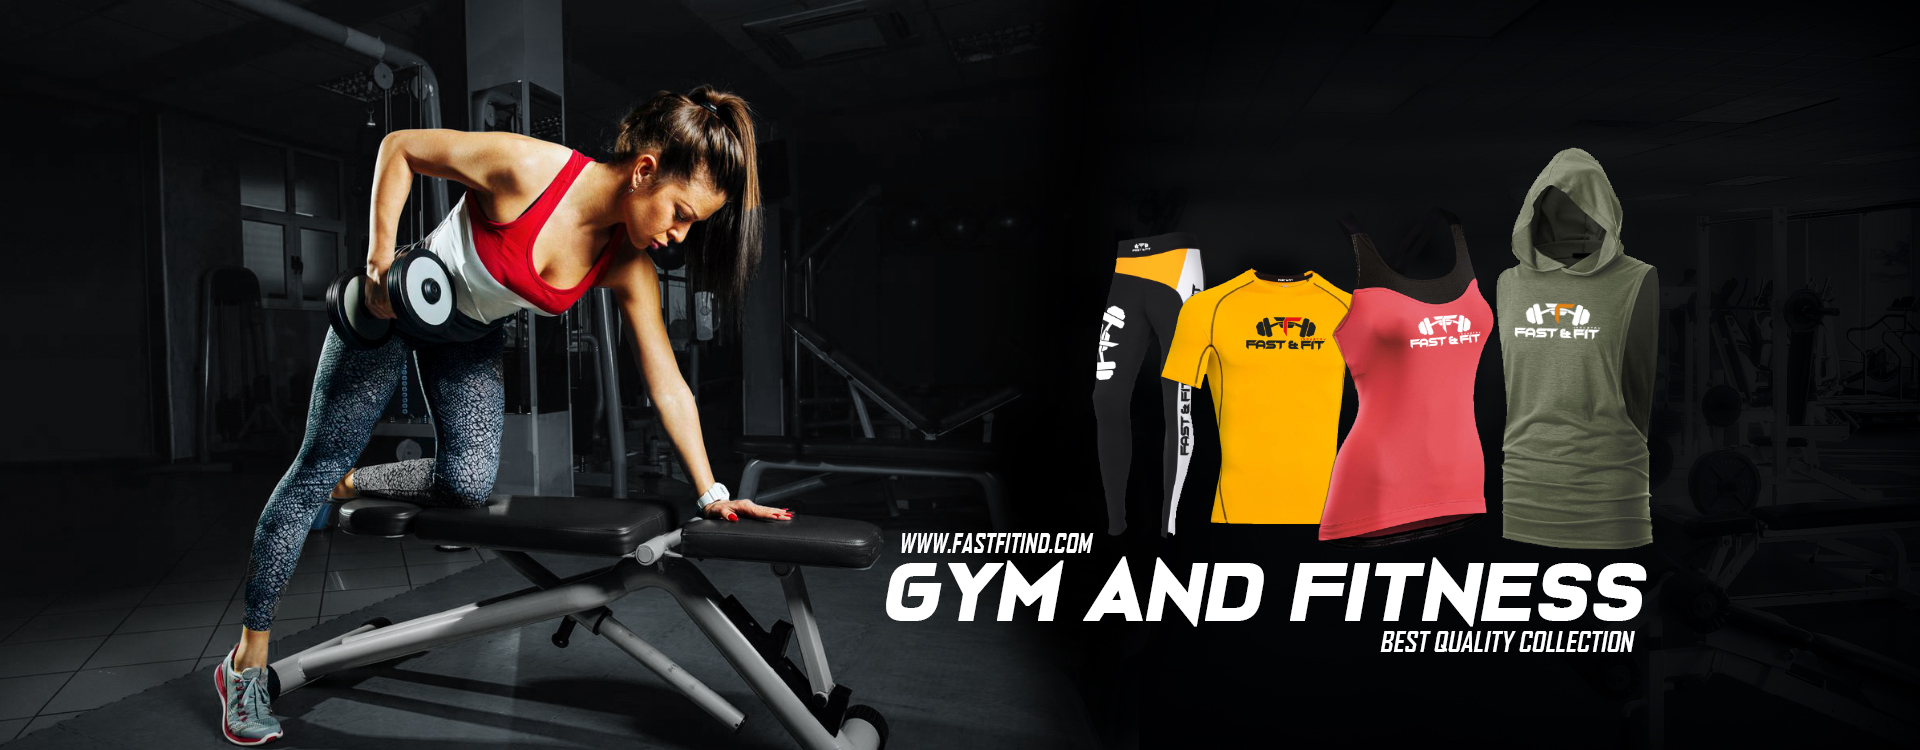 Gym and Fitness1